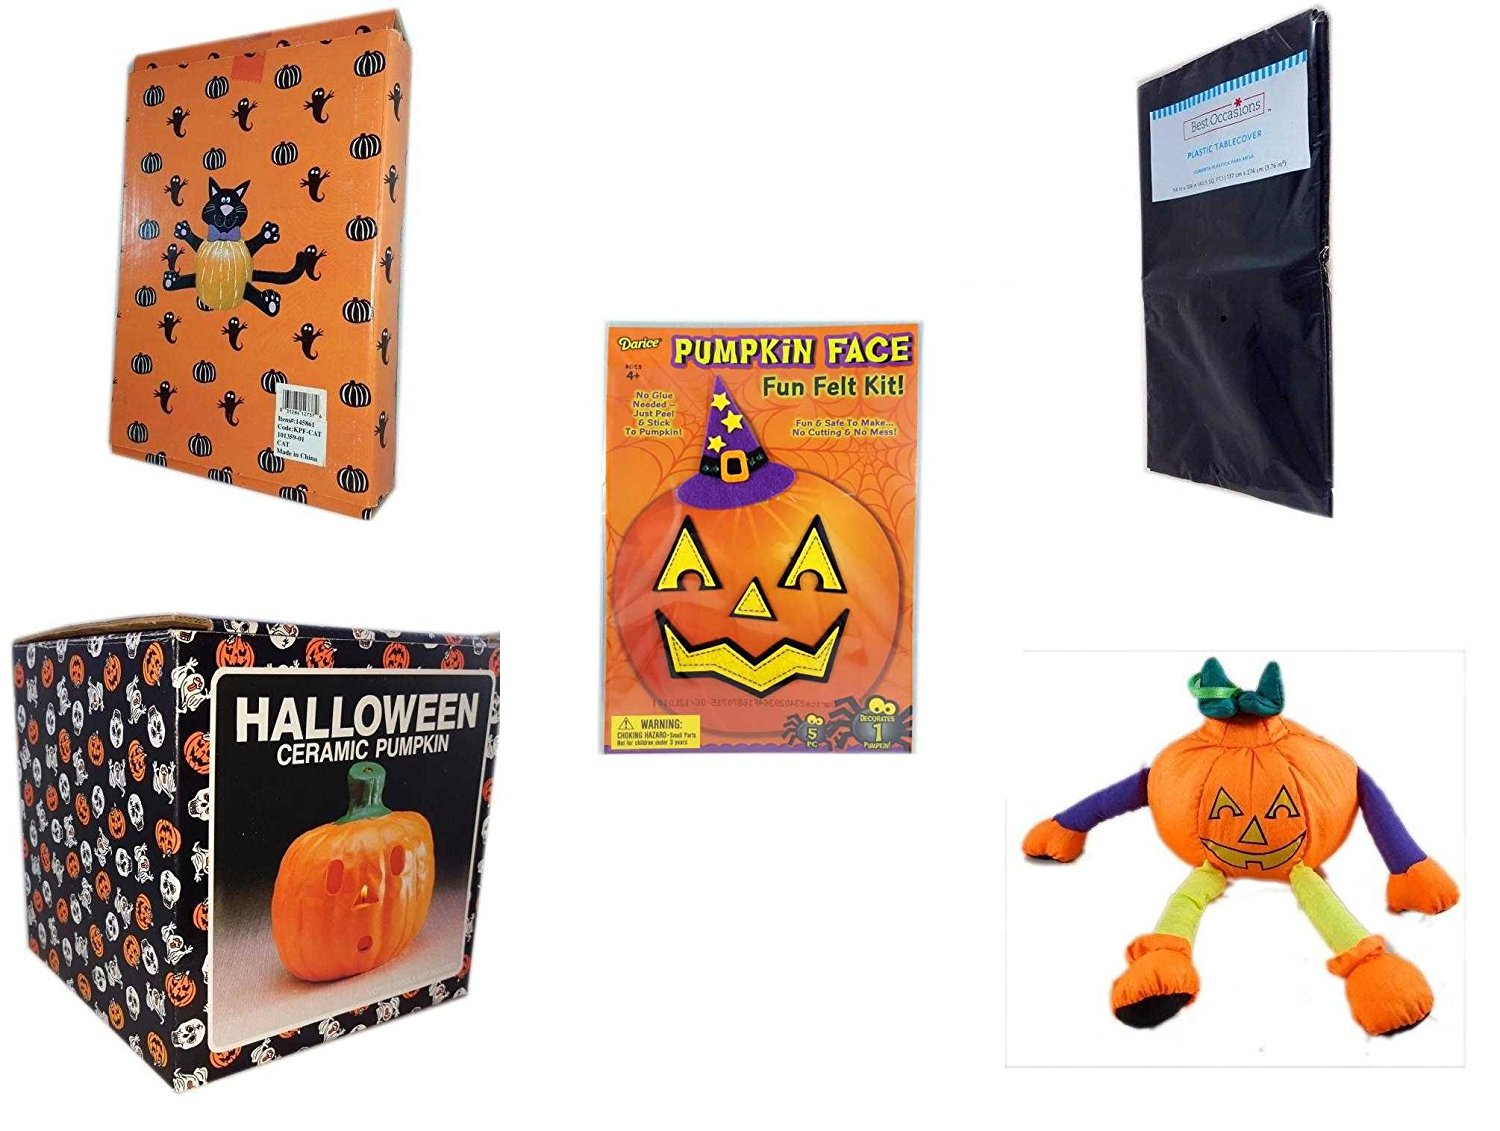 Halloween Fun Gift Bundle [5 piece] - Halloween Cat Pumpkin Push In 5 Piece Head Arms Legs - Black Plastic Table Cover Halloween - Darice Pumpkin Face Fun Felt Kit - Witch - Halloween Ceramic Pumpki